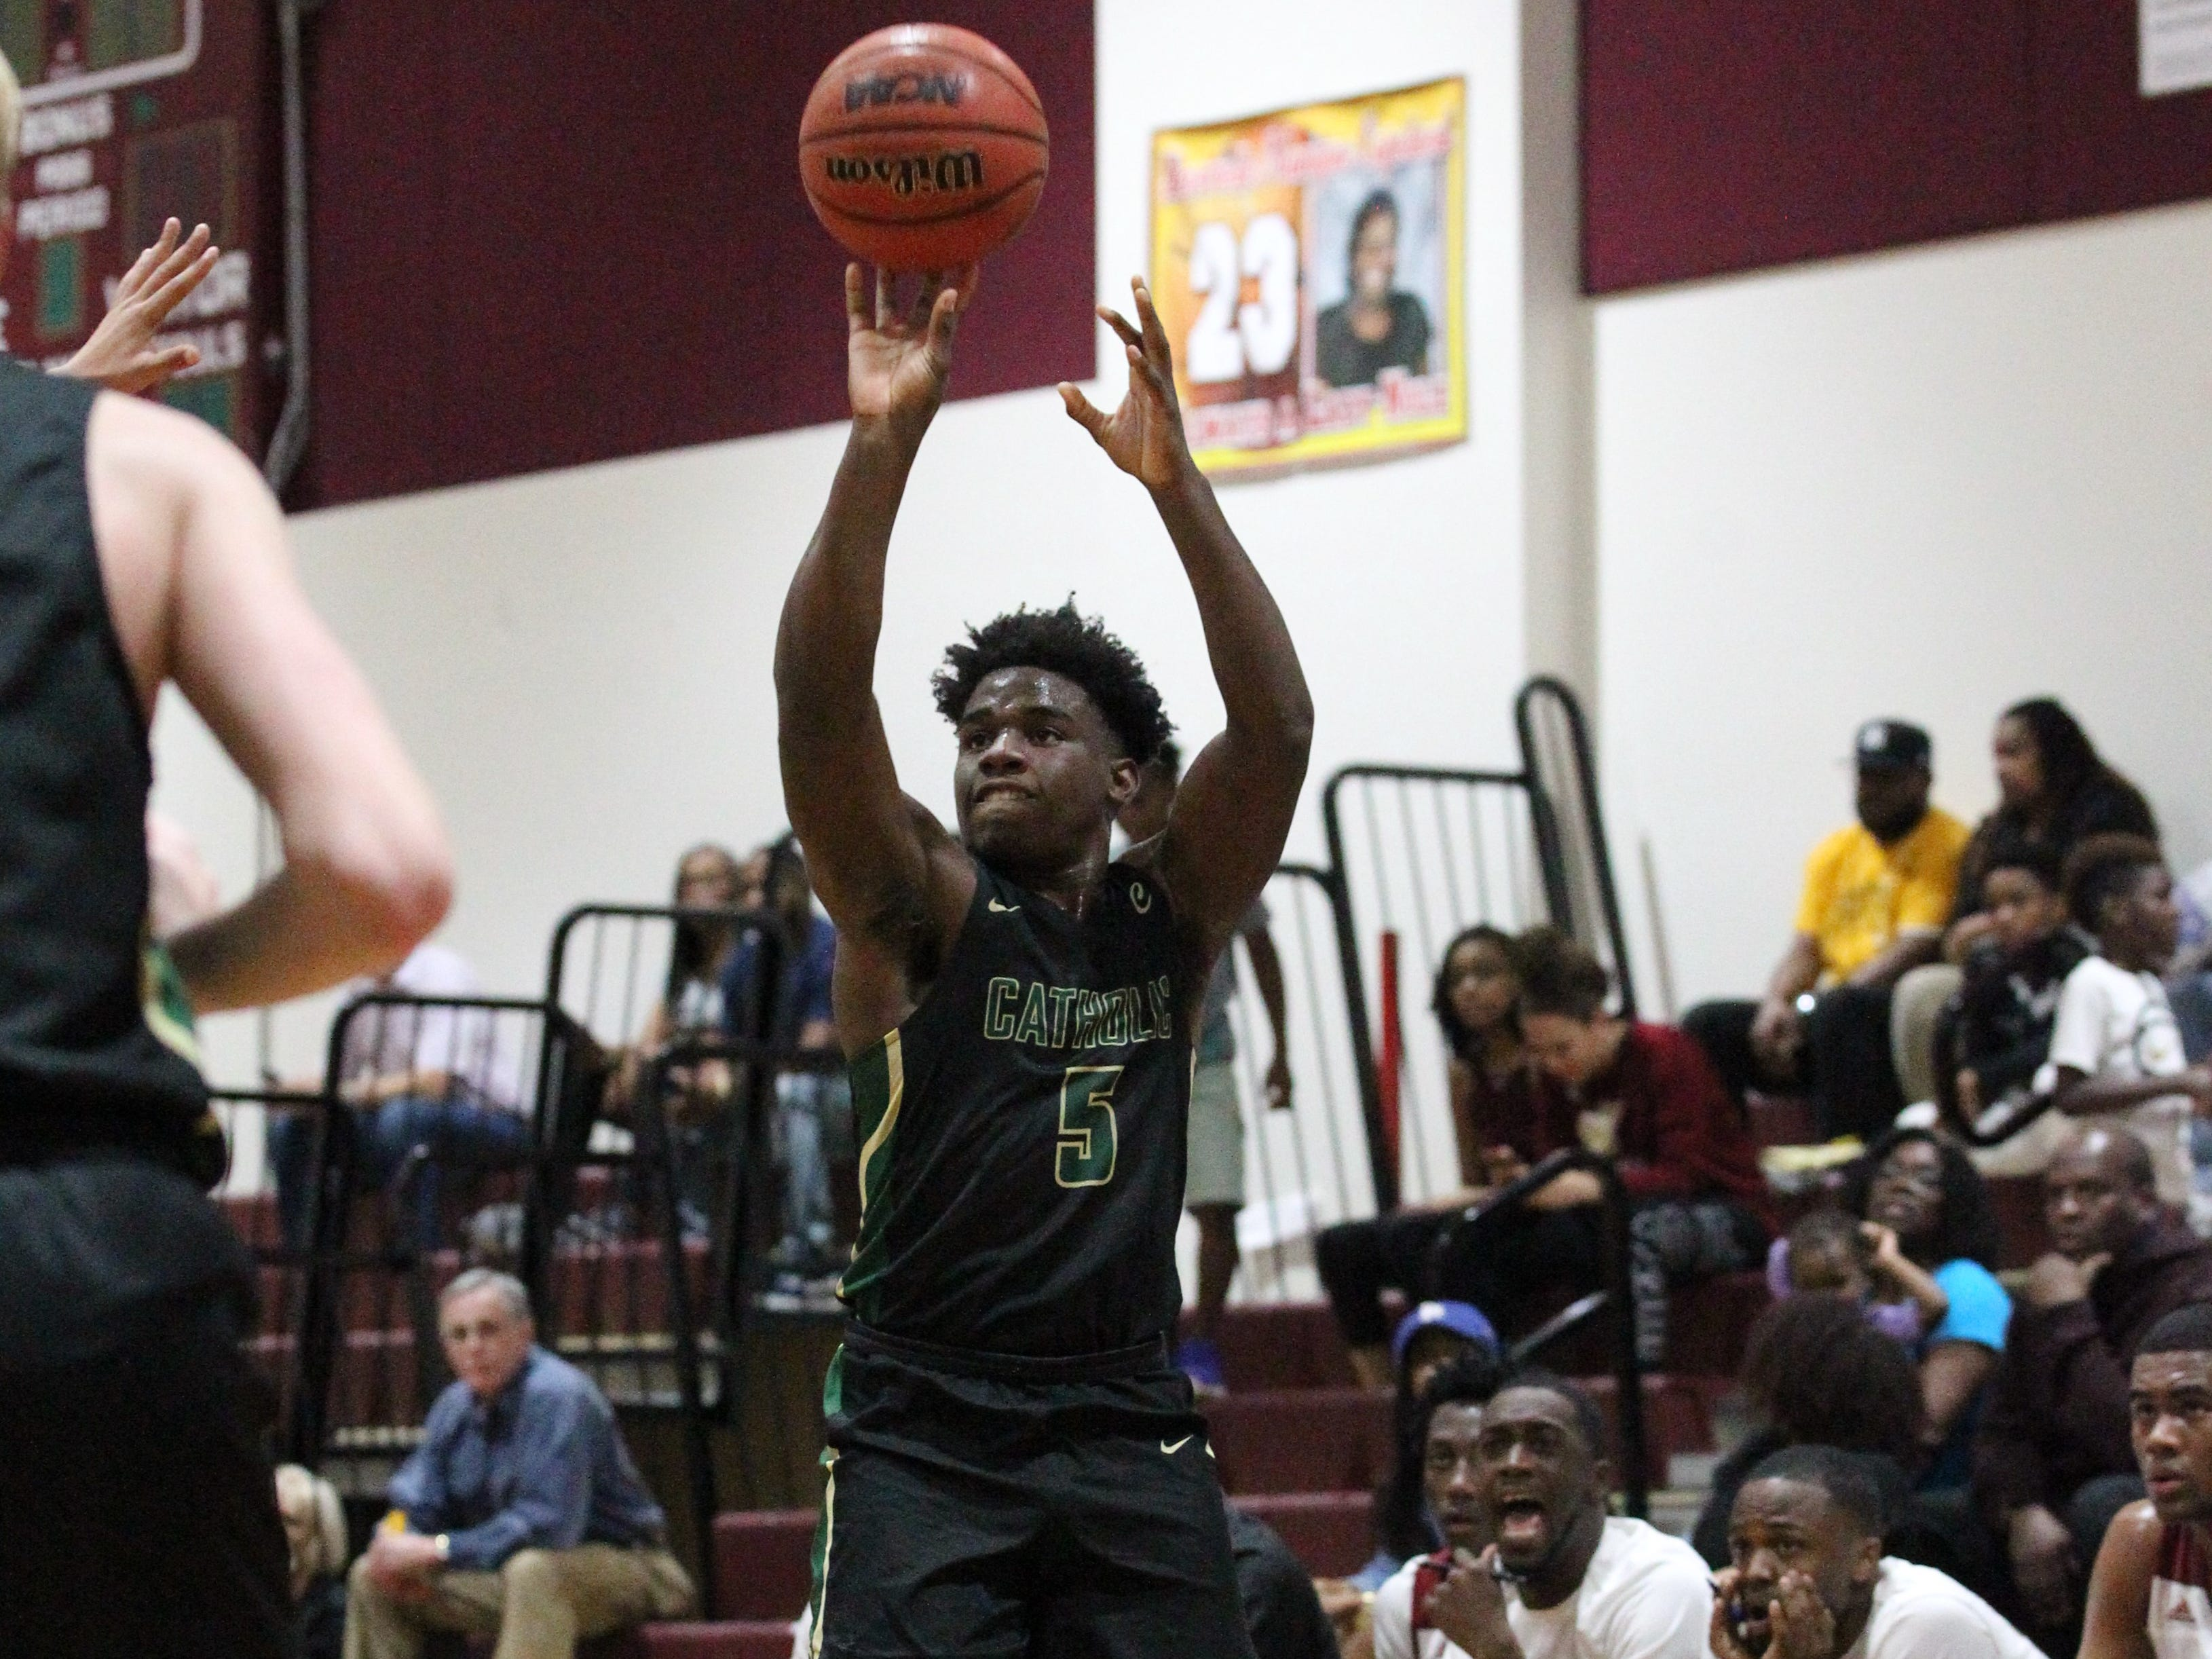 Pensacola Catholic's Ja'kobi Jackson shoots a 3-pointer as the Seminoles beat the Crusaders 47-42 during a Region 1-5A quarterfinal on Feb. 21, 2019.